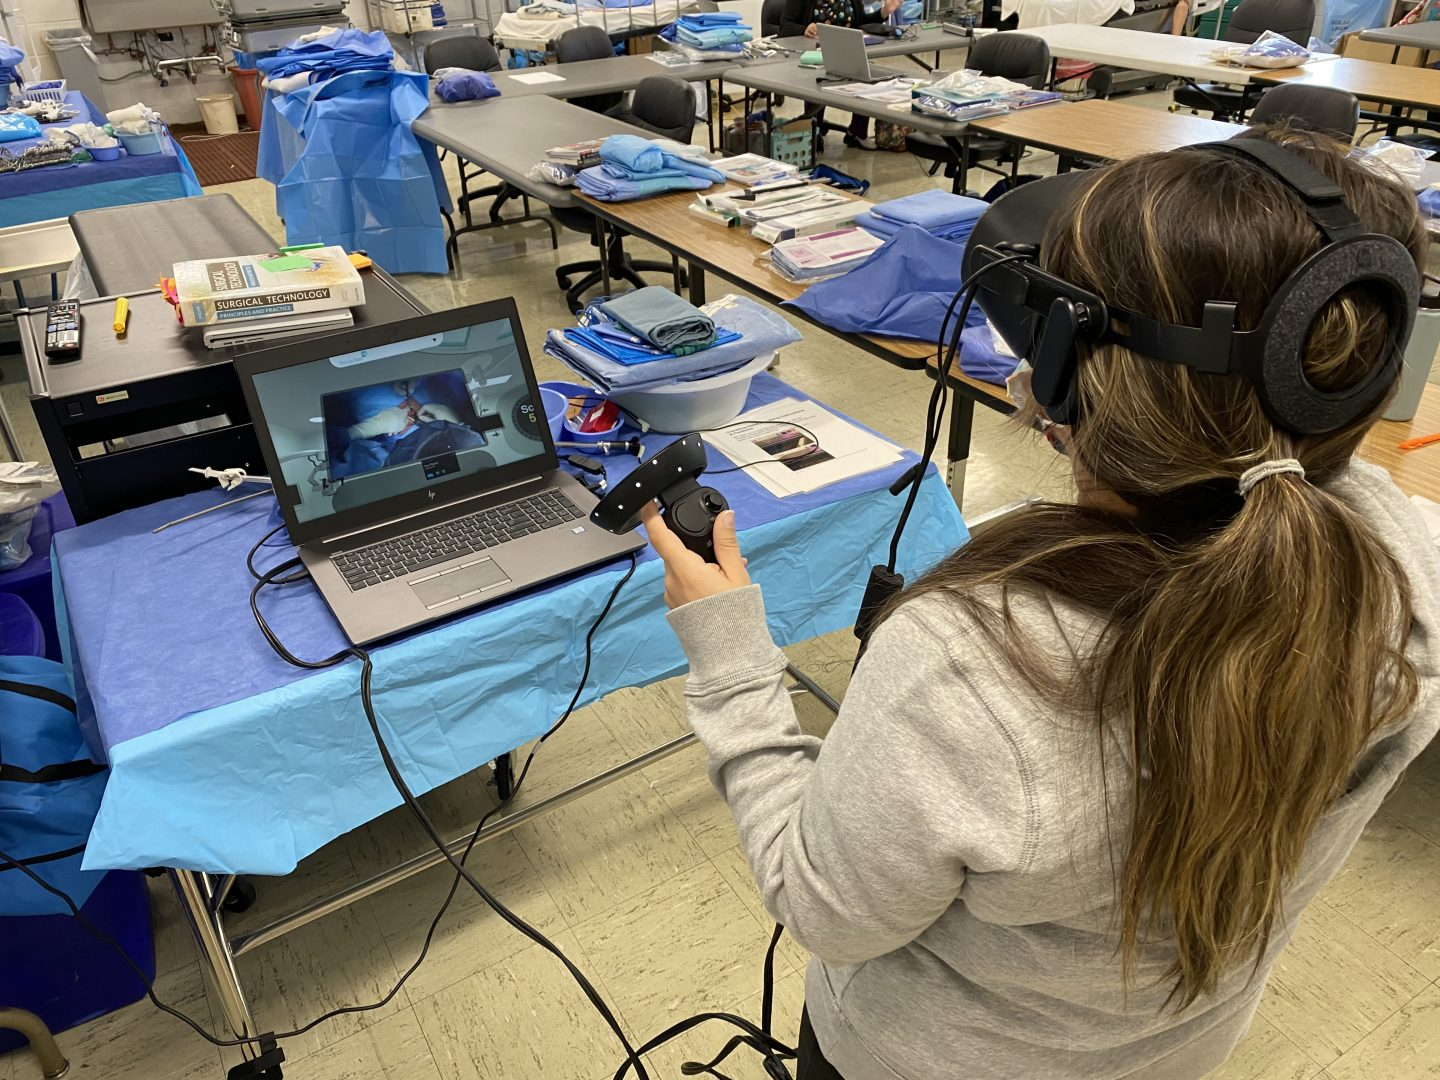 Working in a virtual operating room.